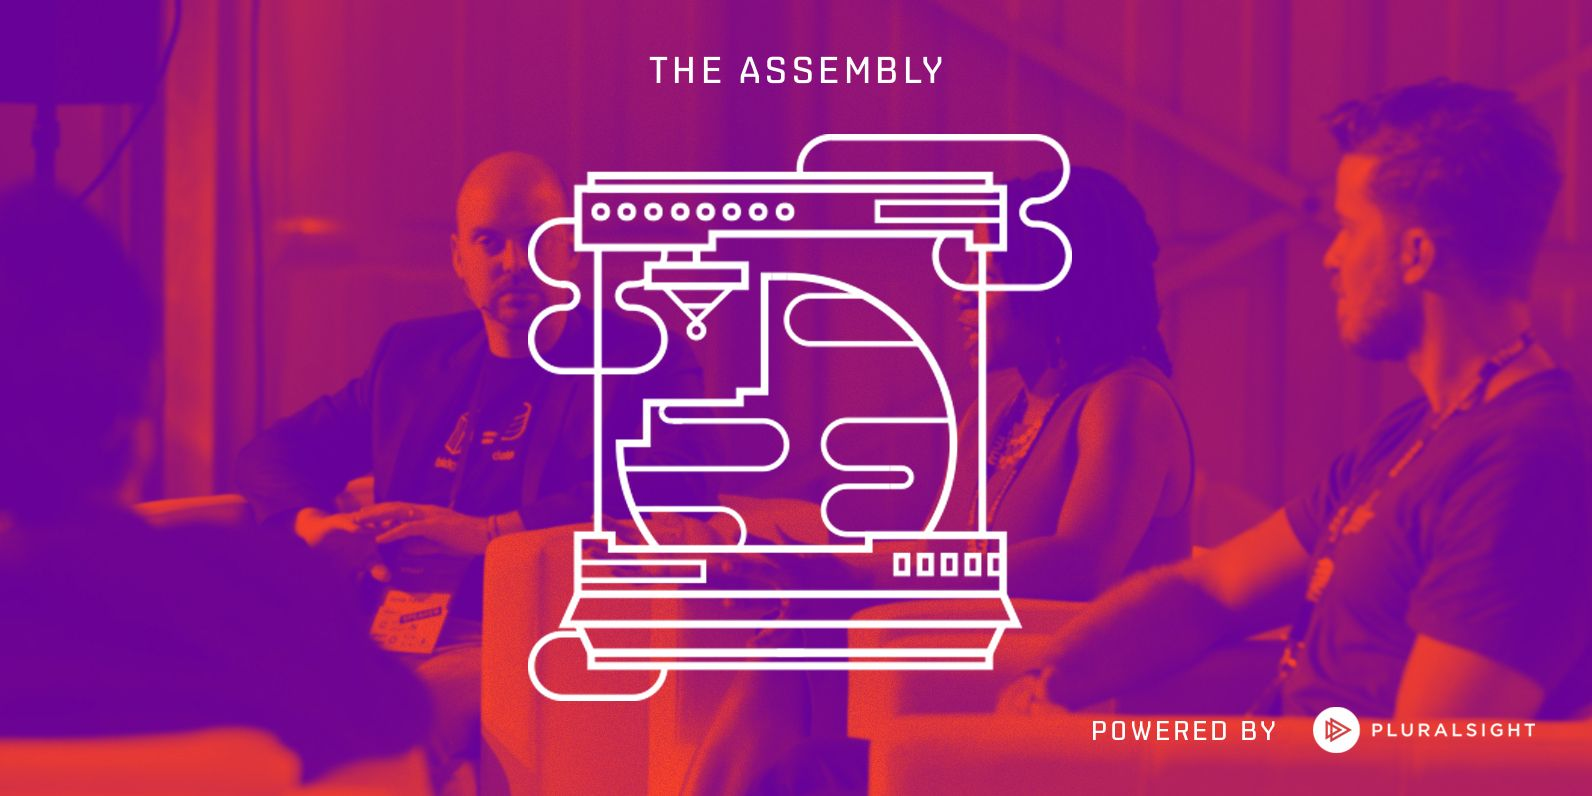 Introducing The Assembly: an event for changemakers who want to use technology to shape the future